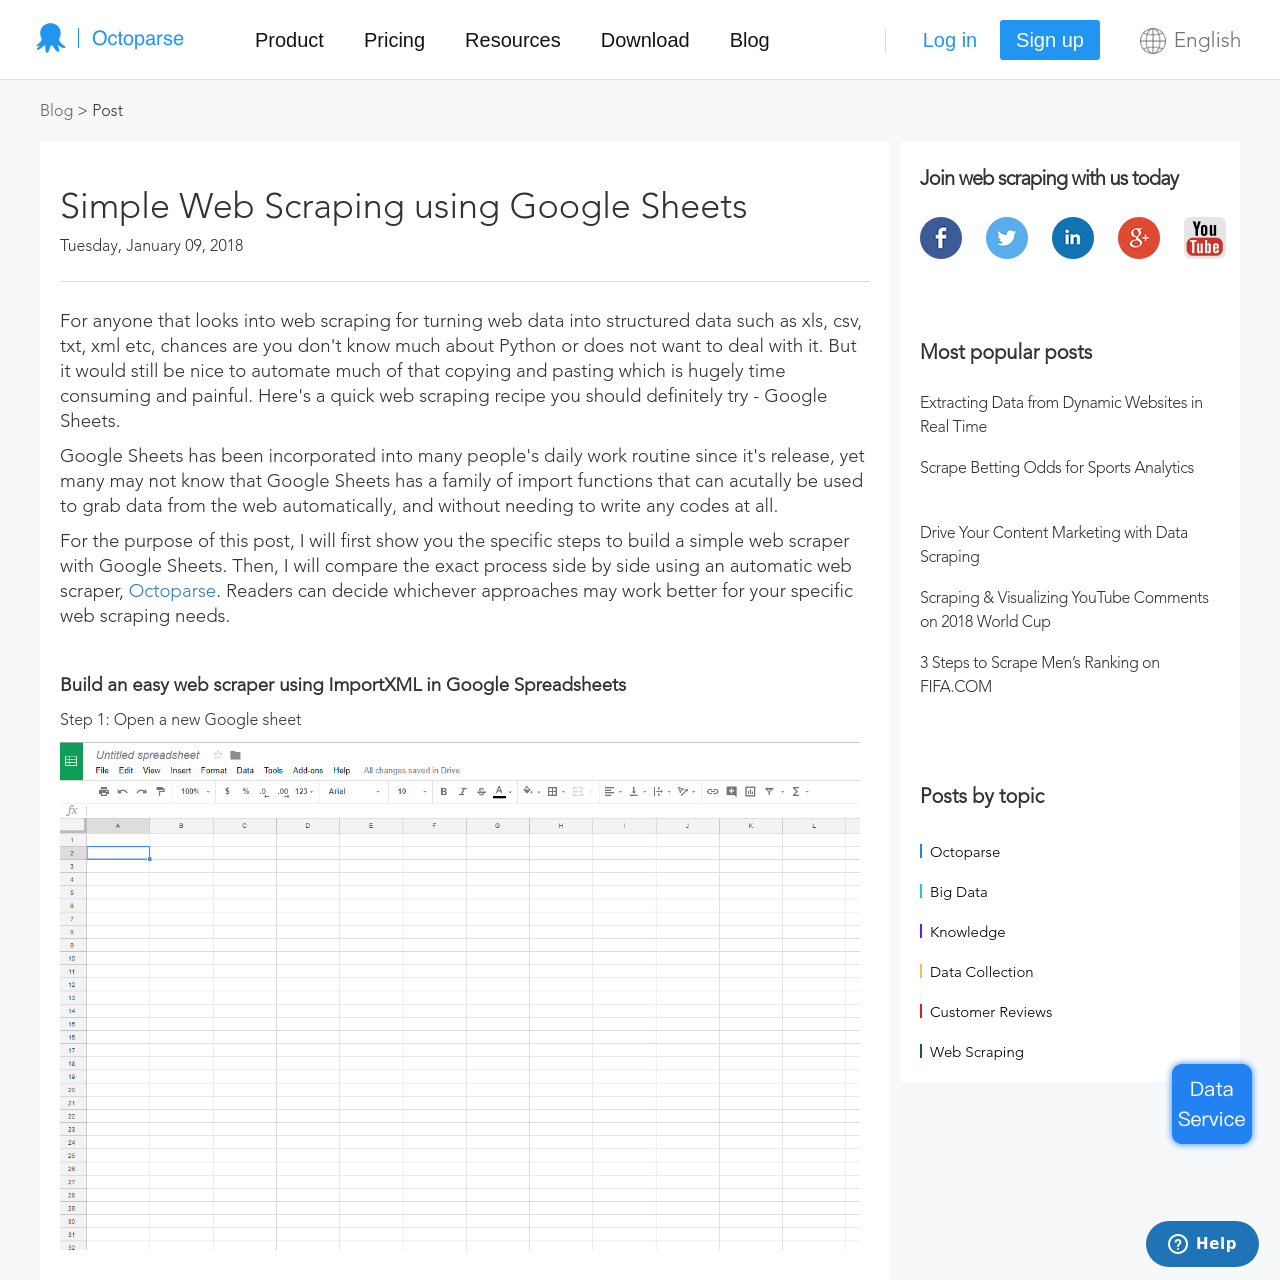 Are na / Simple Web Scraping using Google Sheets | Octoparse